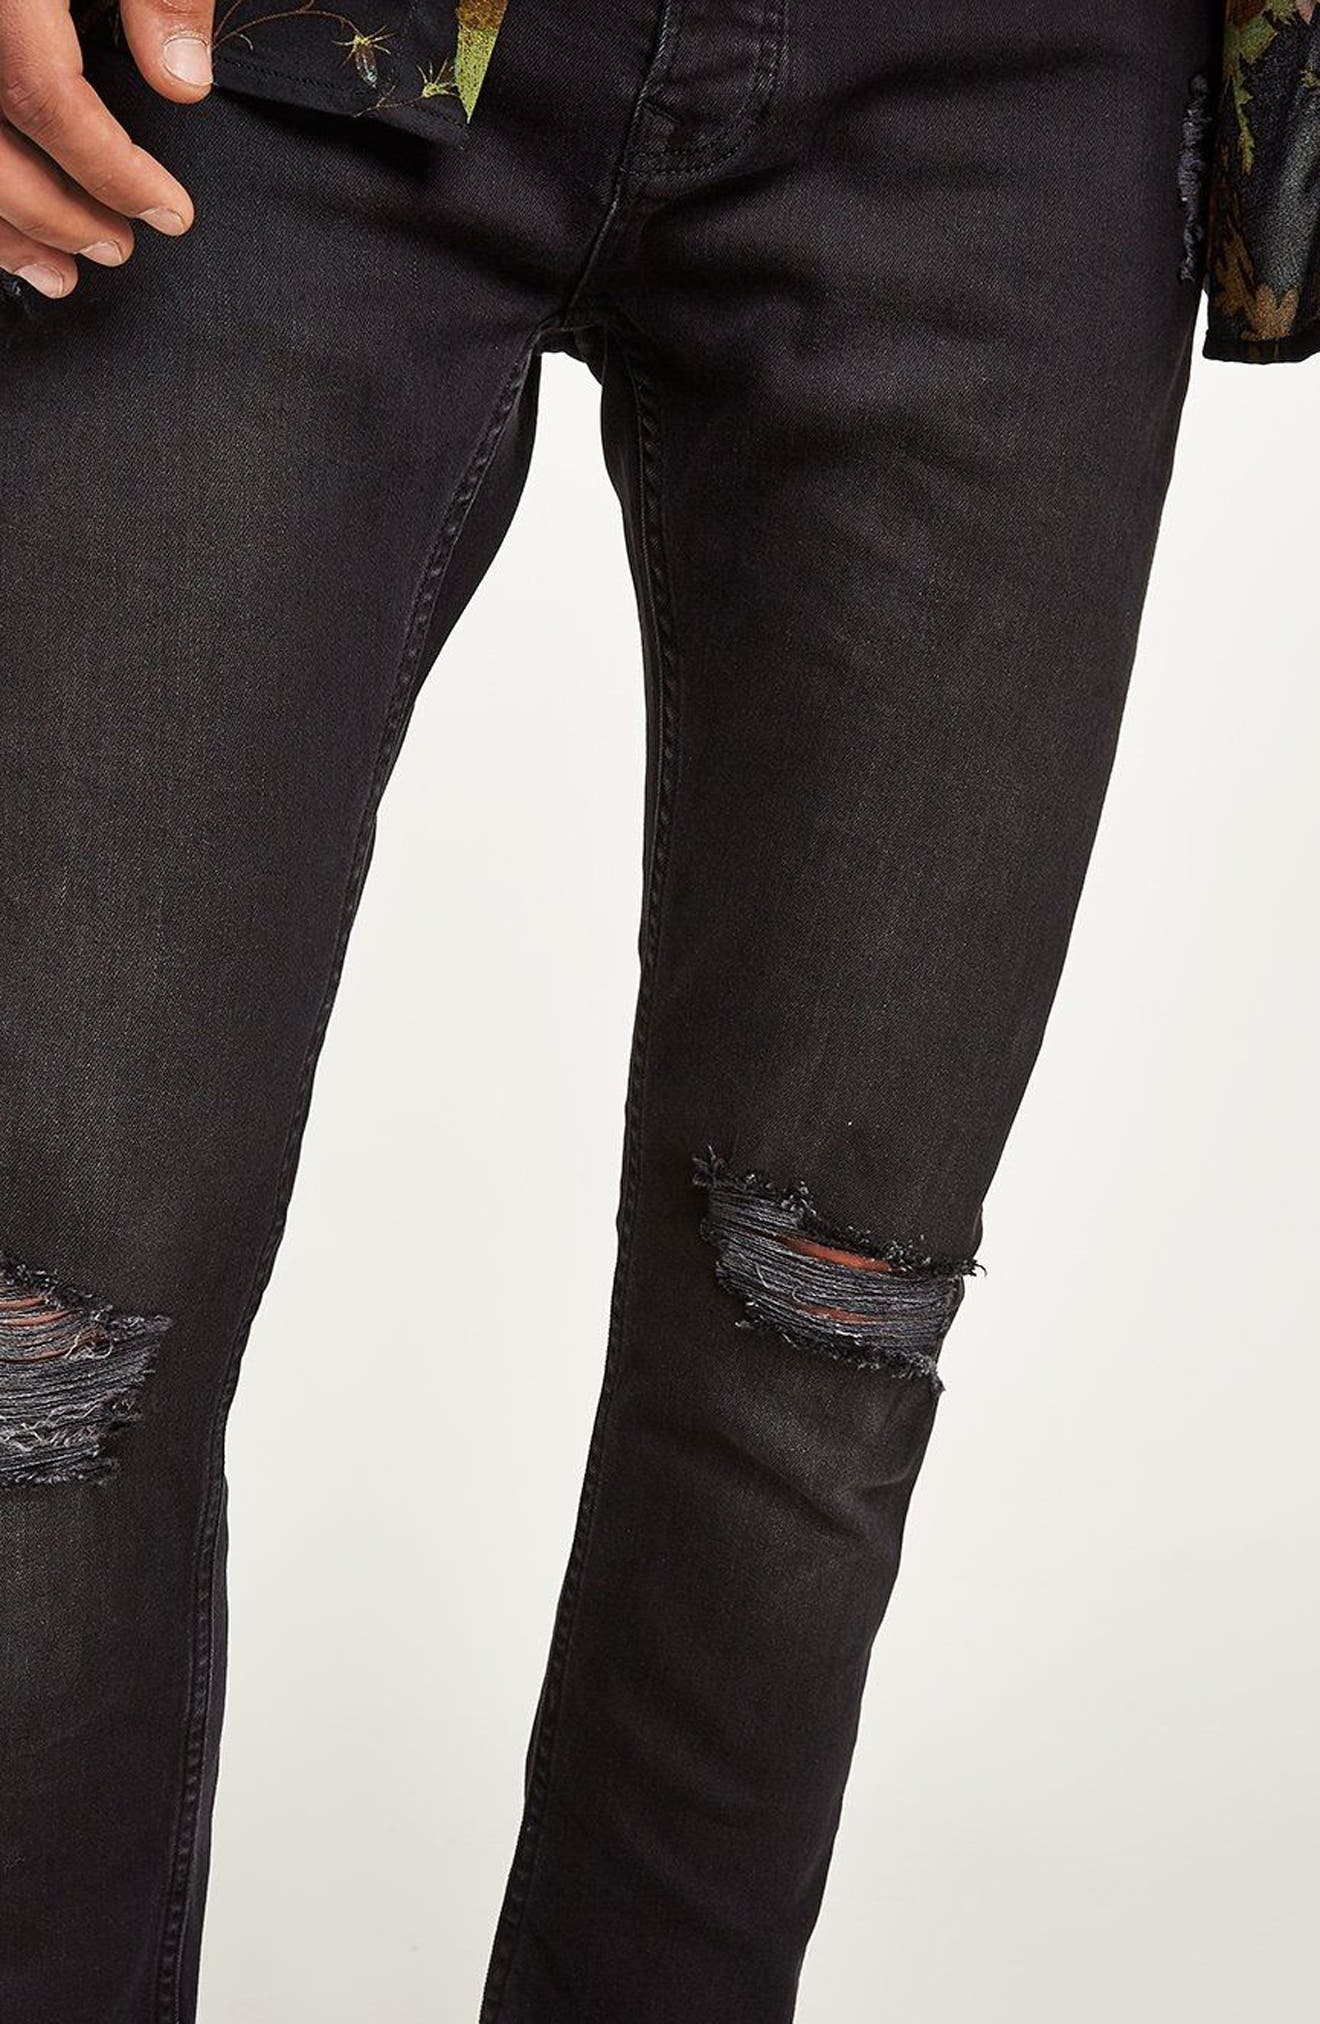 TOPMAN,                             Ripped Stretch Skinny Fit Jeans,                             Alternate thumbnail 7, color,                             001